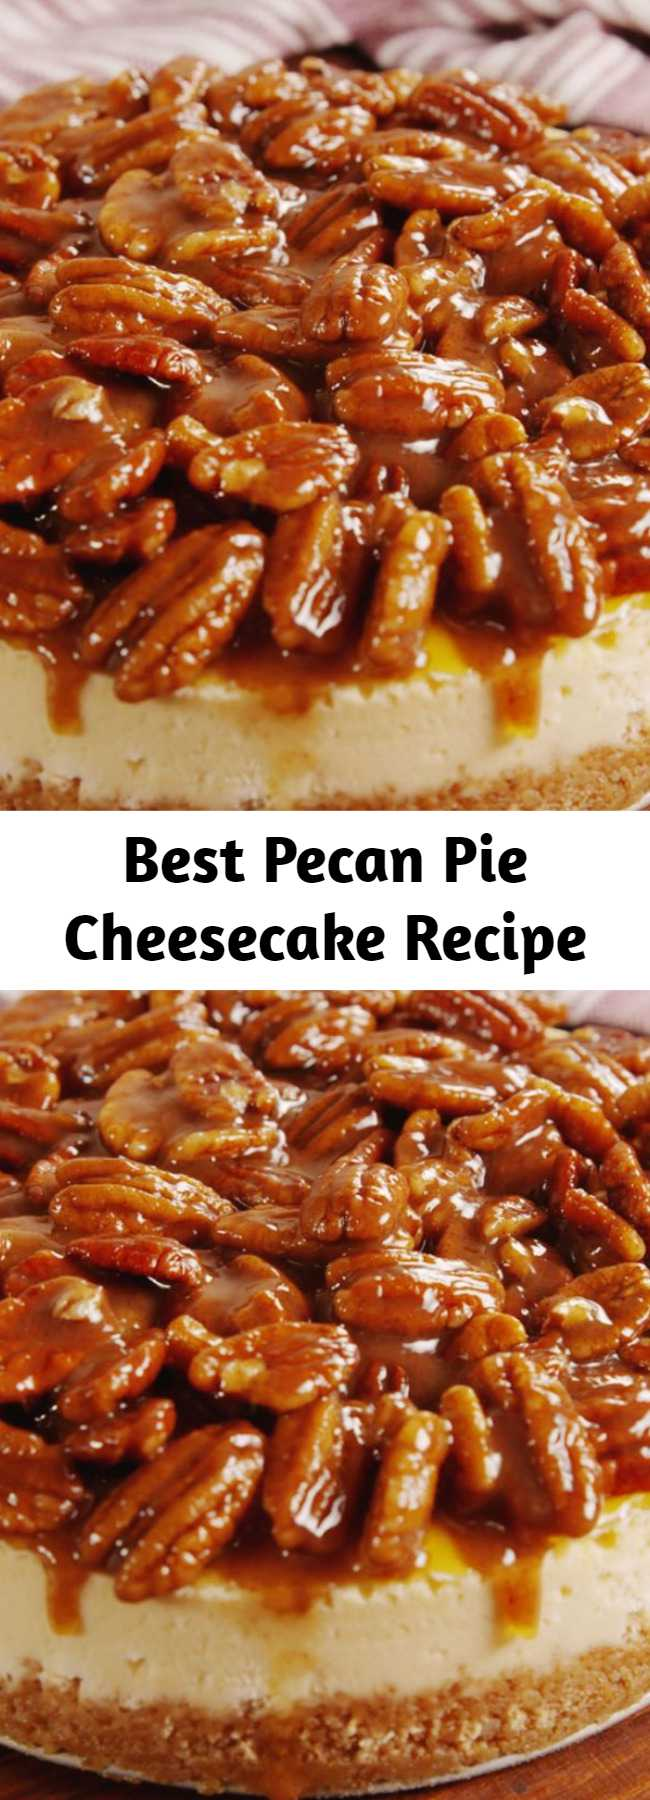 Best Pecan Pie Cheesecake Recipe - Take your pecan pie to the next level and combine it with your favorite cheesecake. You'll have a creamy base with a sweet crunchy topping that makes this the best Thanksgiving dessert ever. You can make the topping up to an hour in advance and keep at room temperature. But don't refrigerate it or else the butter will solidify! #food #holiday #pastryporn #familydinner #comfortfood #easyrecipe #recipe #forkyeah #eatthetrend #plating